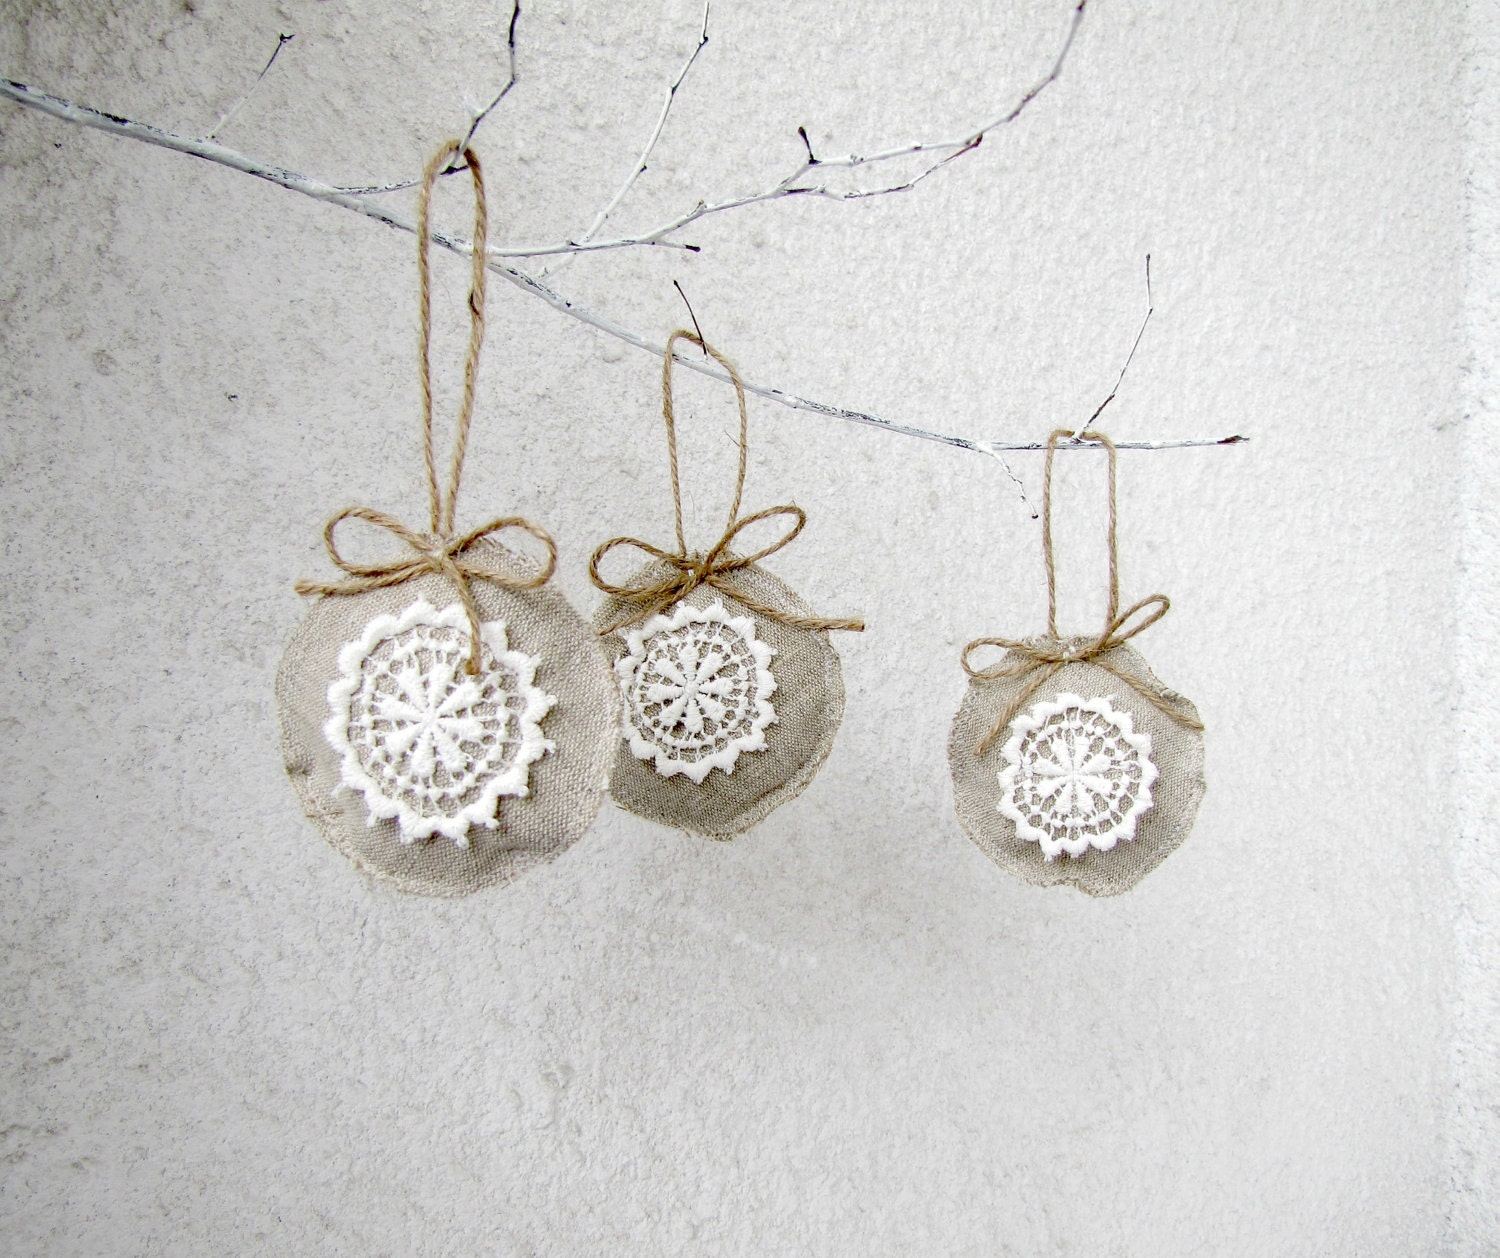 Christmas Ornaments, Linen and lace Holiday ornaments, shabby, chic, eco friendly - set of 3 - HelloVioleta